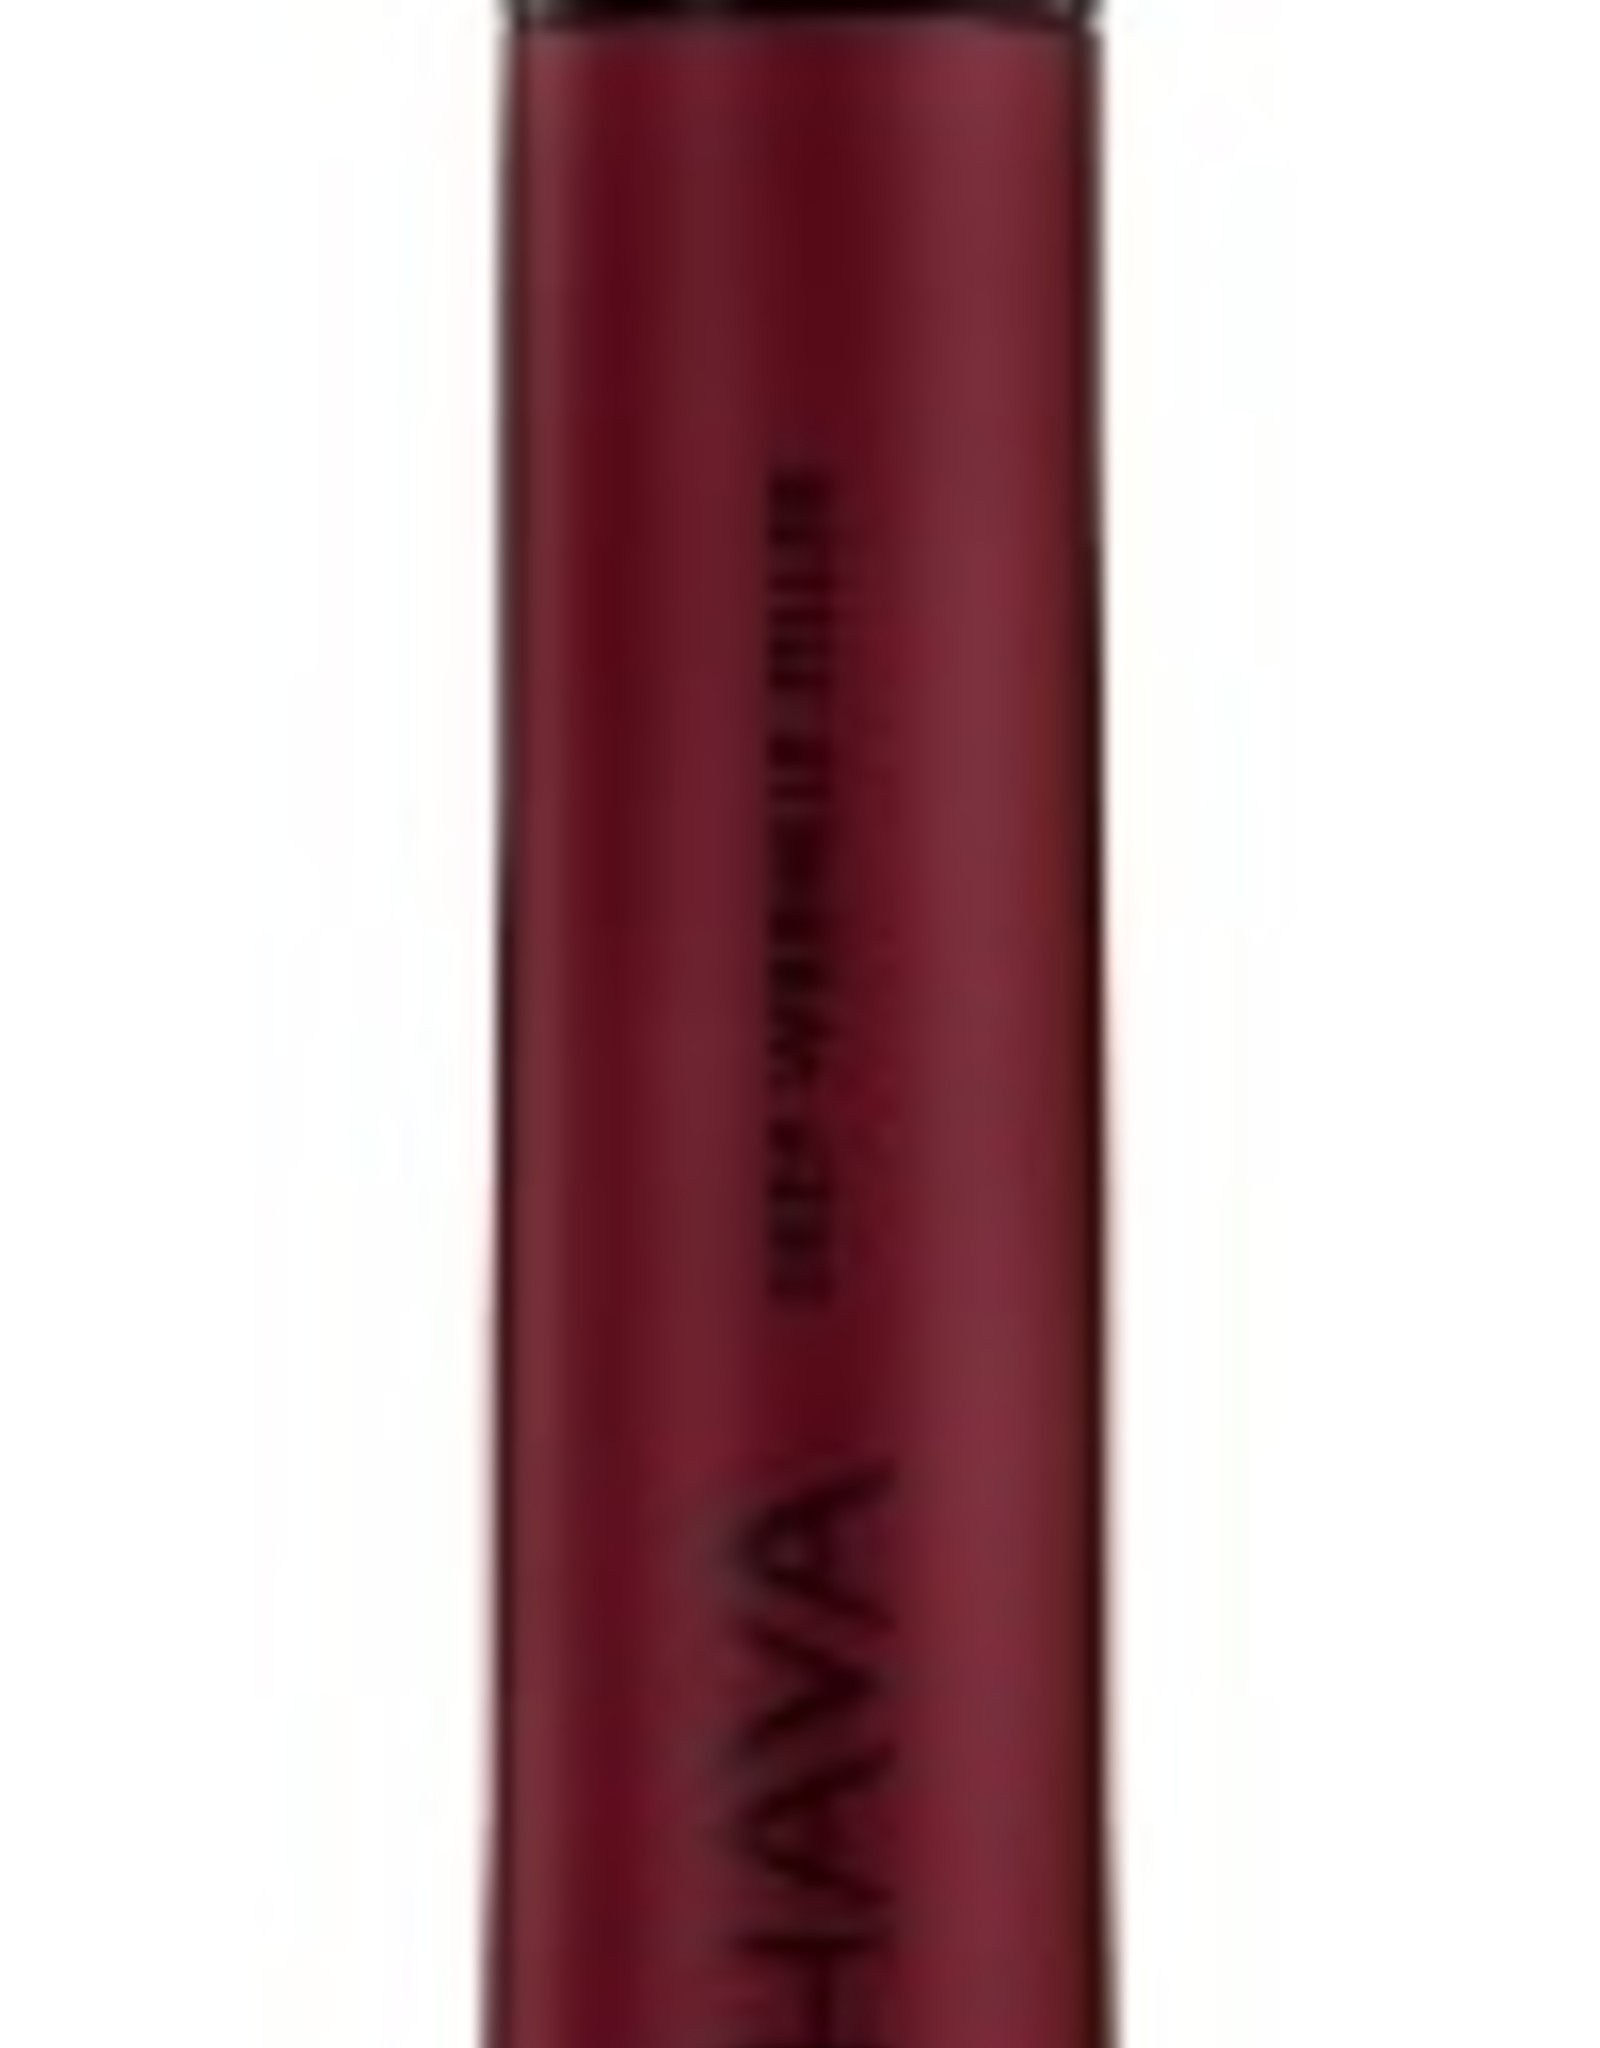 AHAVA Deep wrinkle filler 15ml